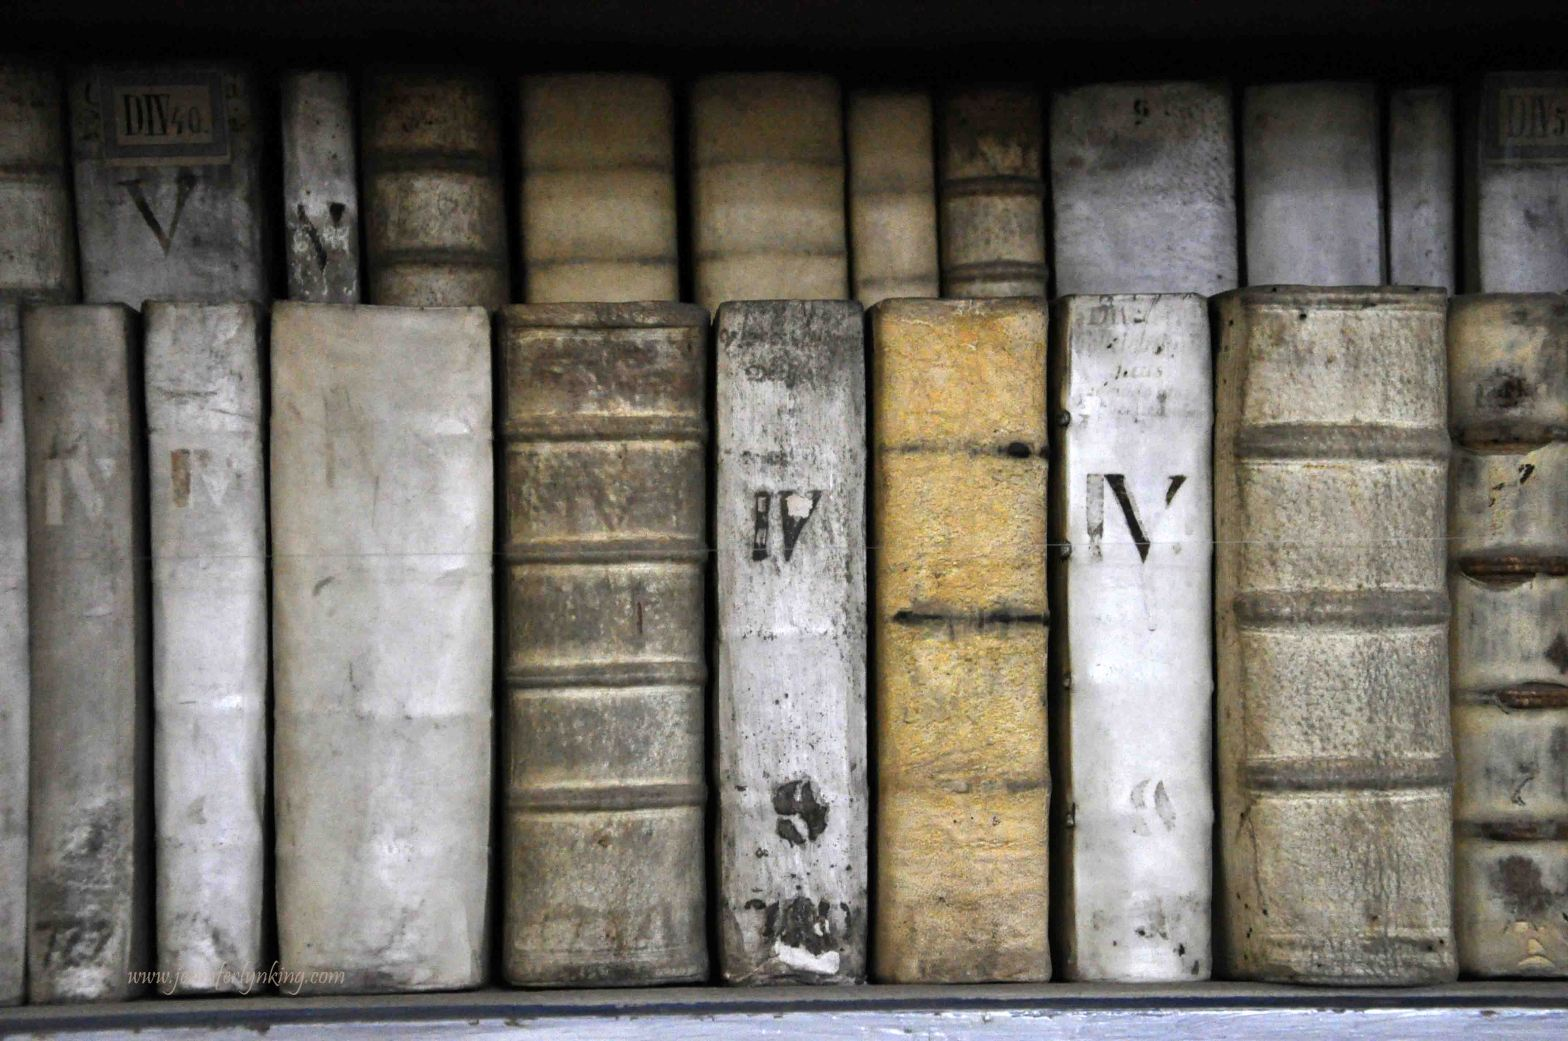 The Treasure of Old Books, Strahov Monastery, Prague